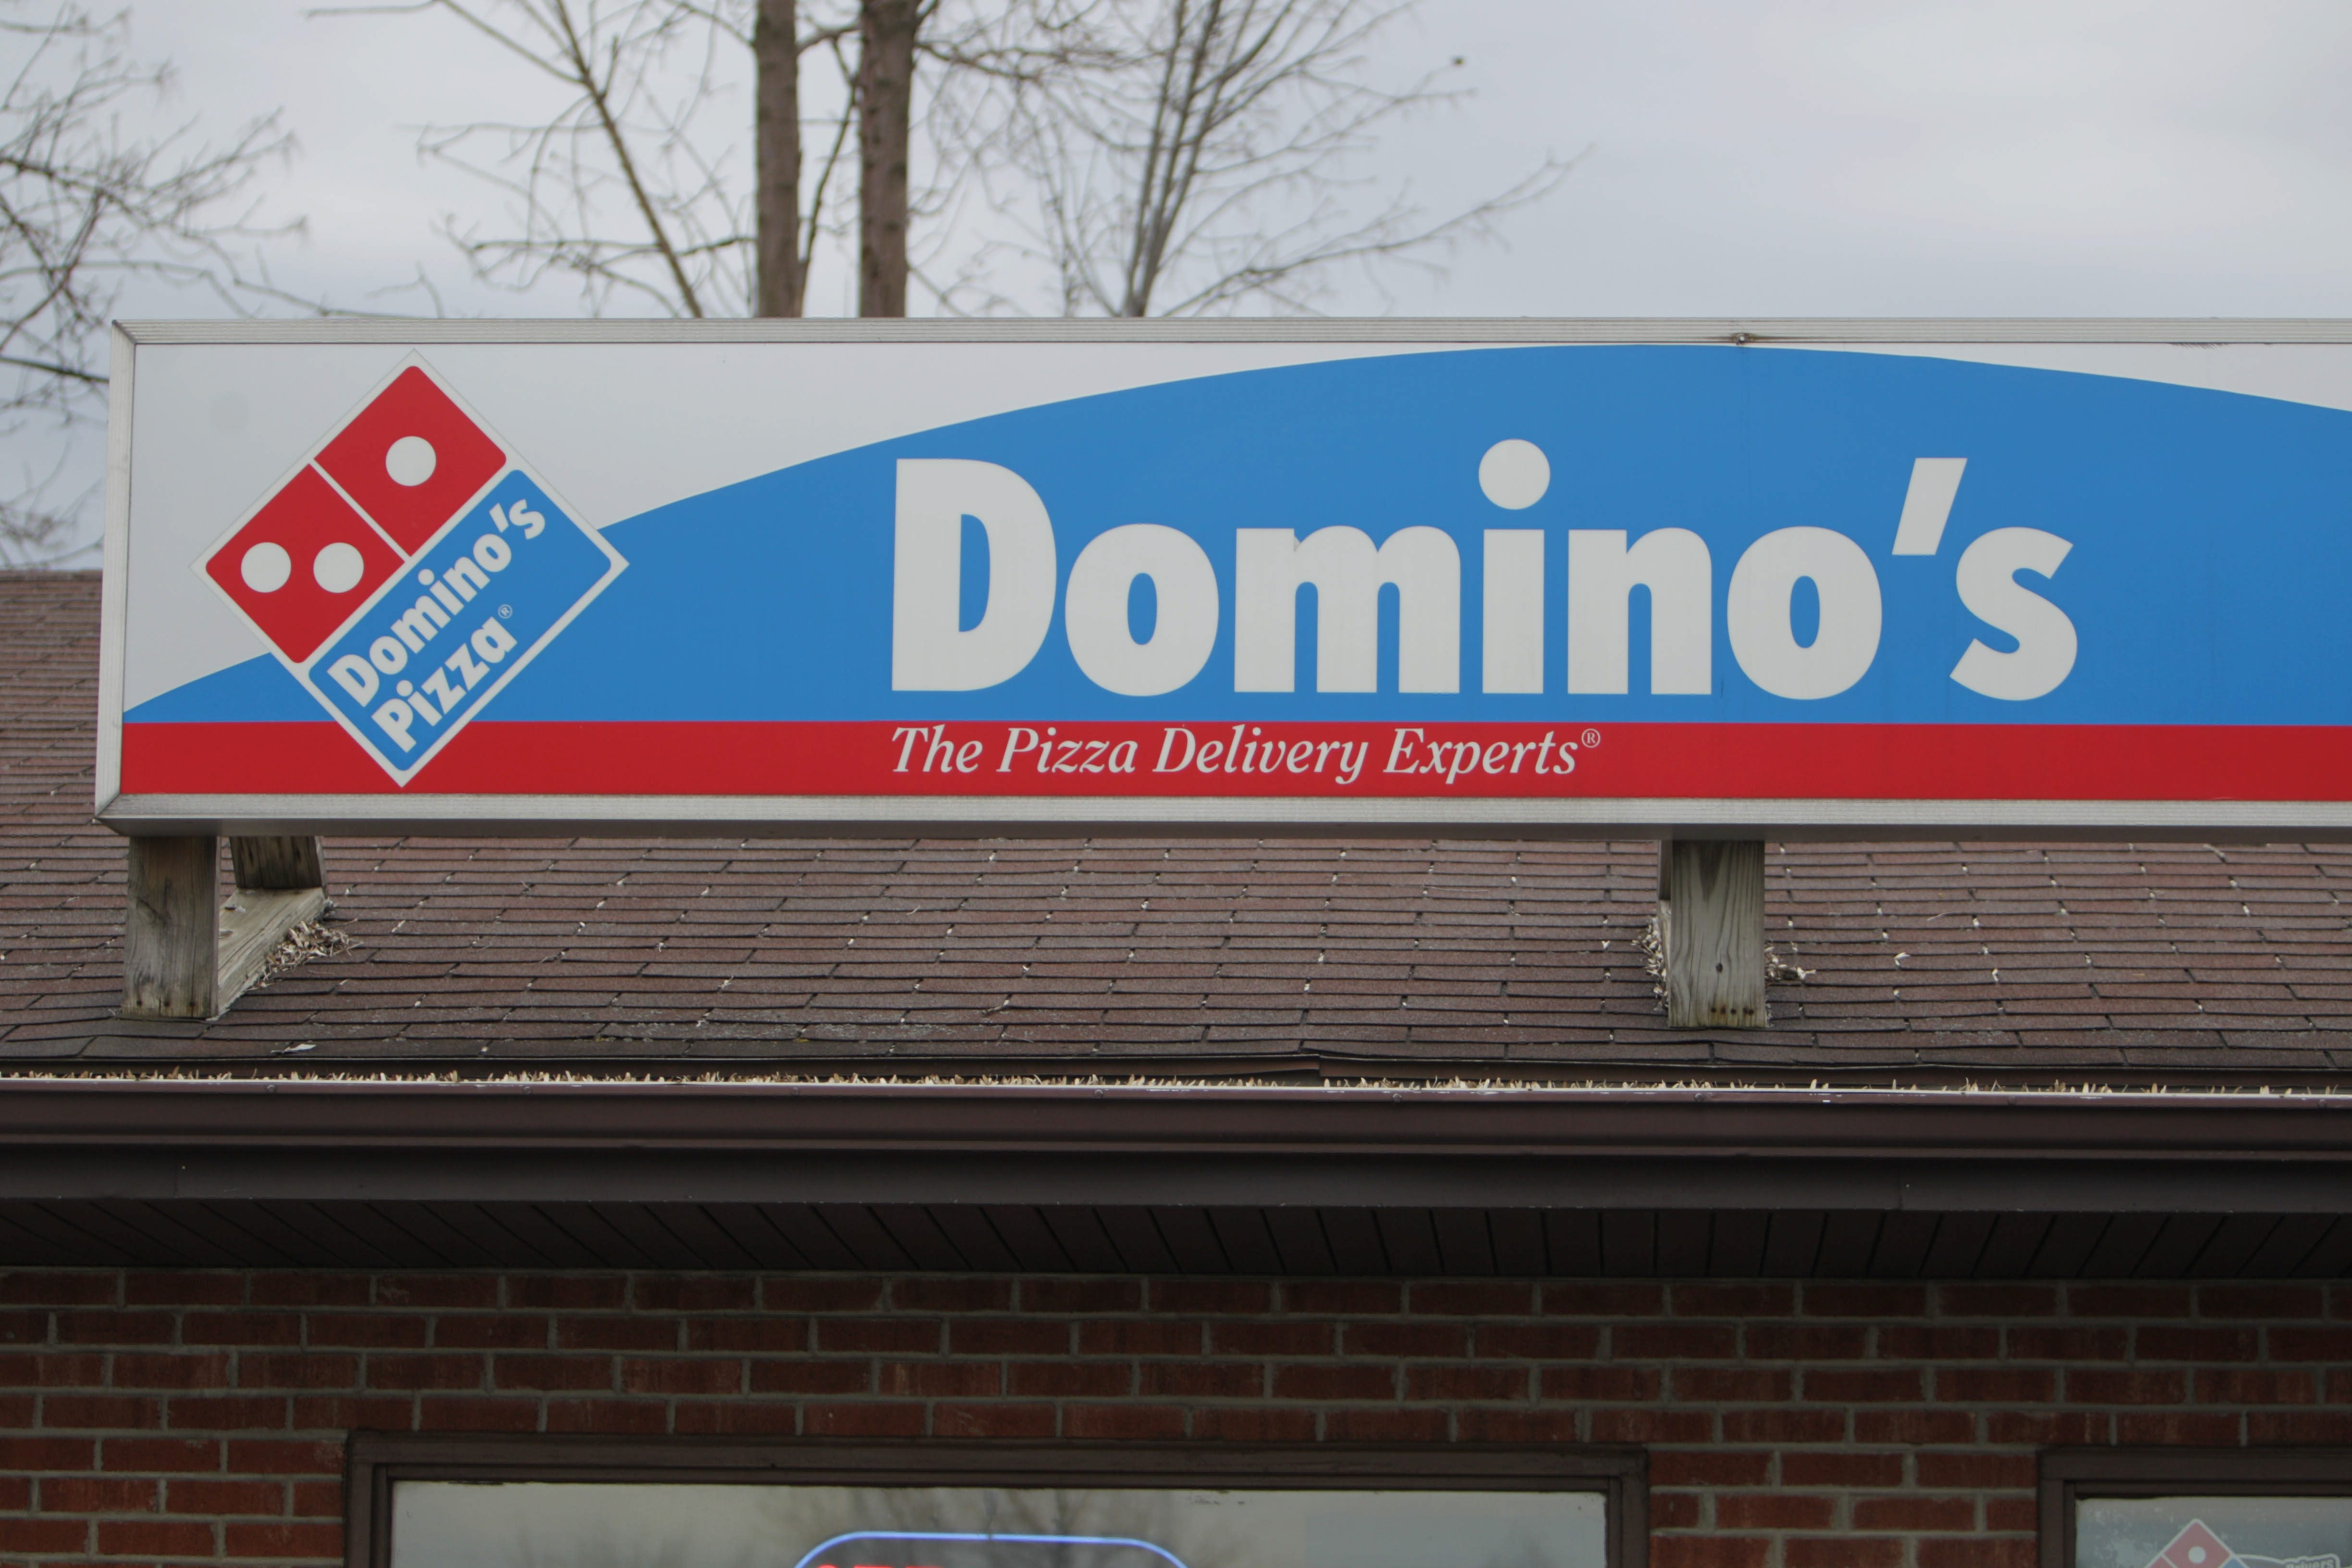 Domino's Pizza has been hit with a lawsuit by the New York attorney general over wage violations. (News file photo)